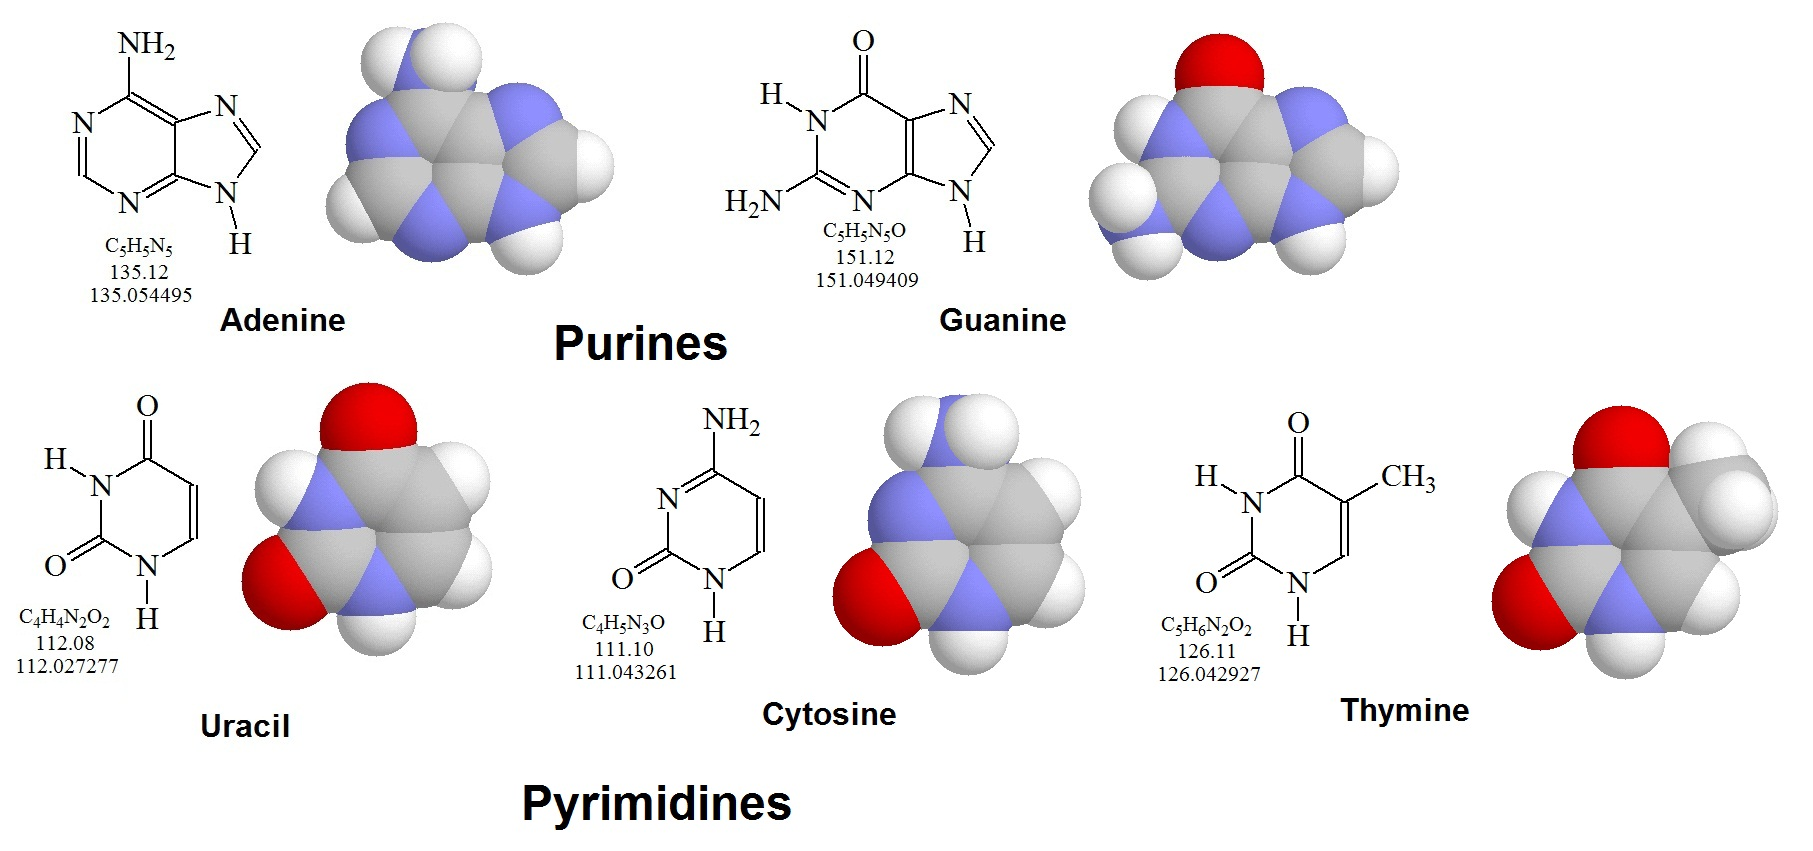 Purines pyrimidines and nucleotides figure 1 general nucleotide structure showing the numbering convention for the pentose ring the carbon atoms of the pentoses are numbered with primes ccuart Choice Image